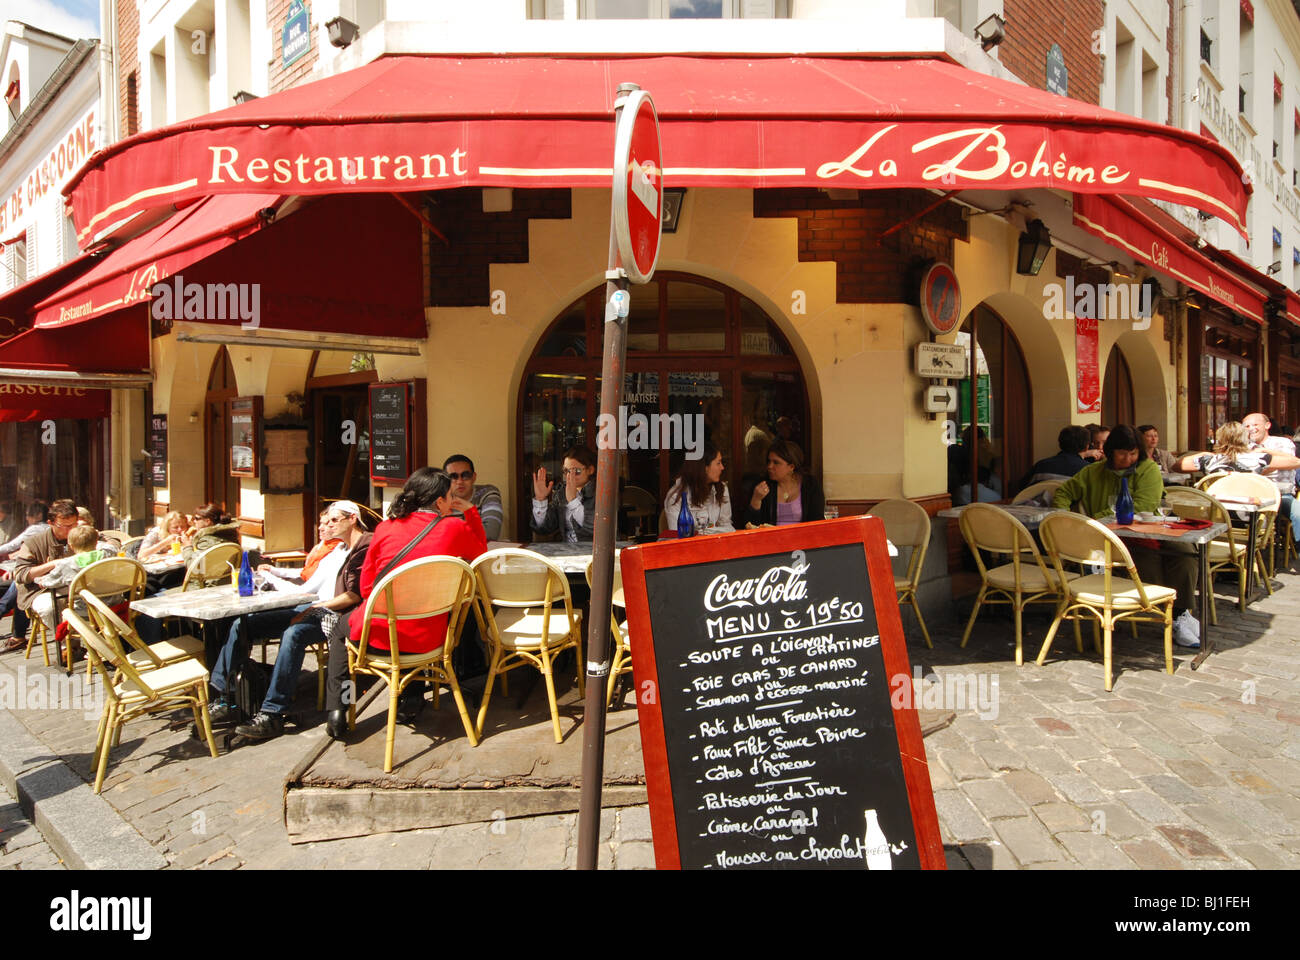 Restaurant la boheme montmartre paris france stock photo for Restaurant miroir montmartre